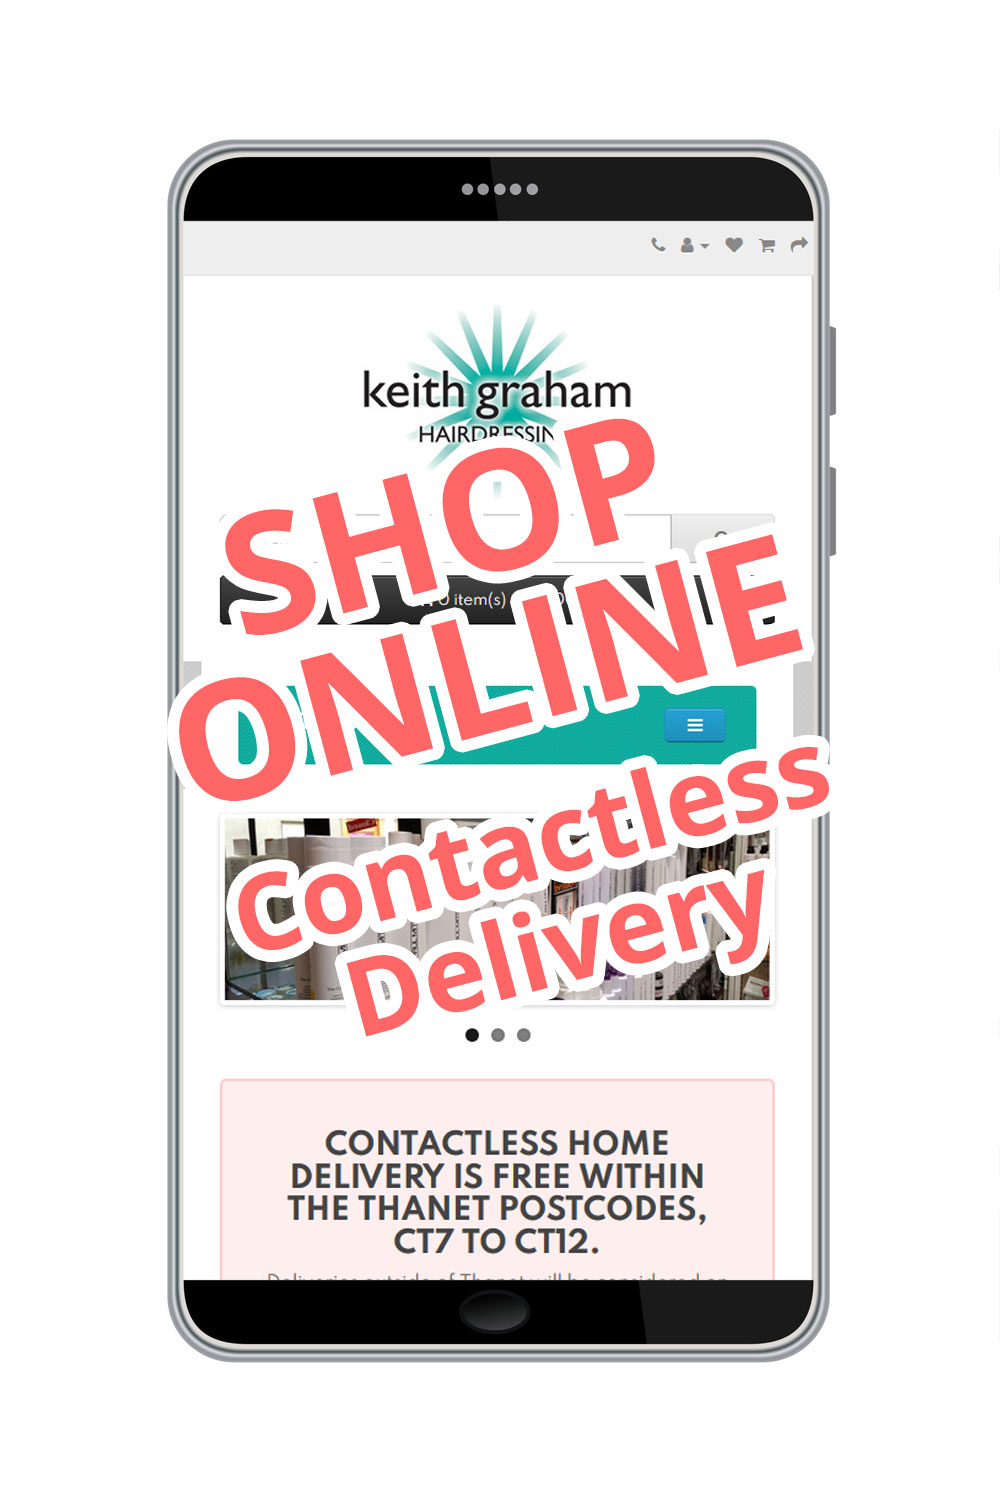 Image of the Keith Graham Hairdressing online shop displayed on a mobile phone